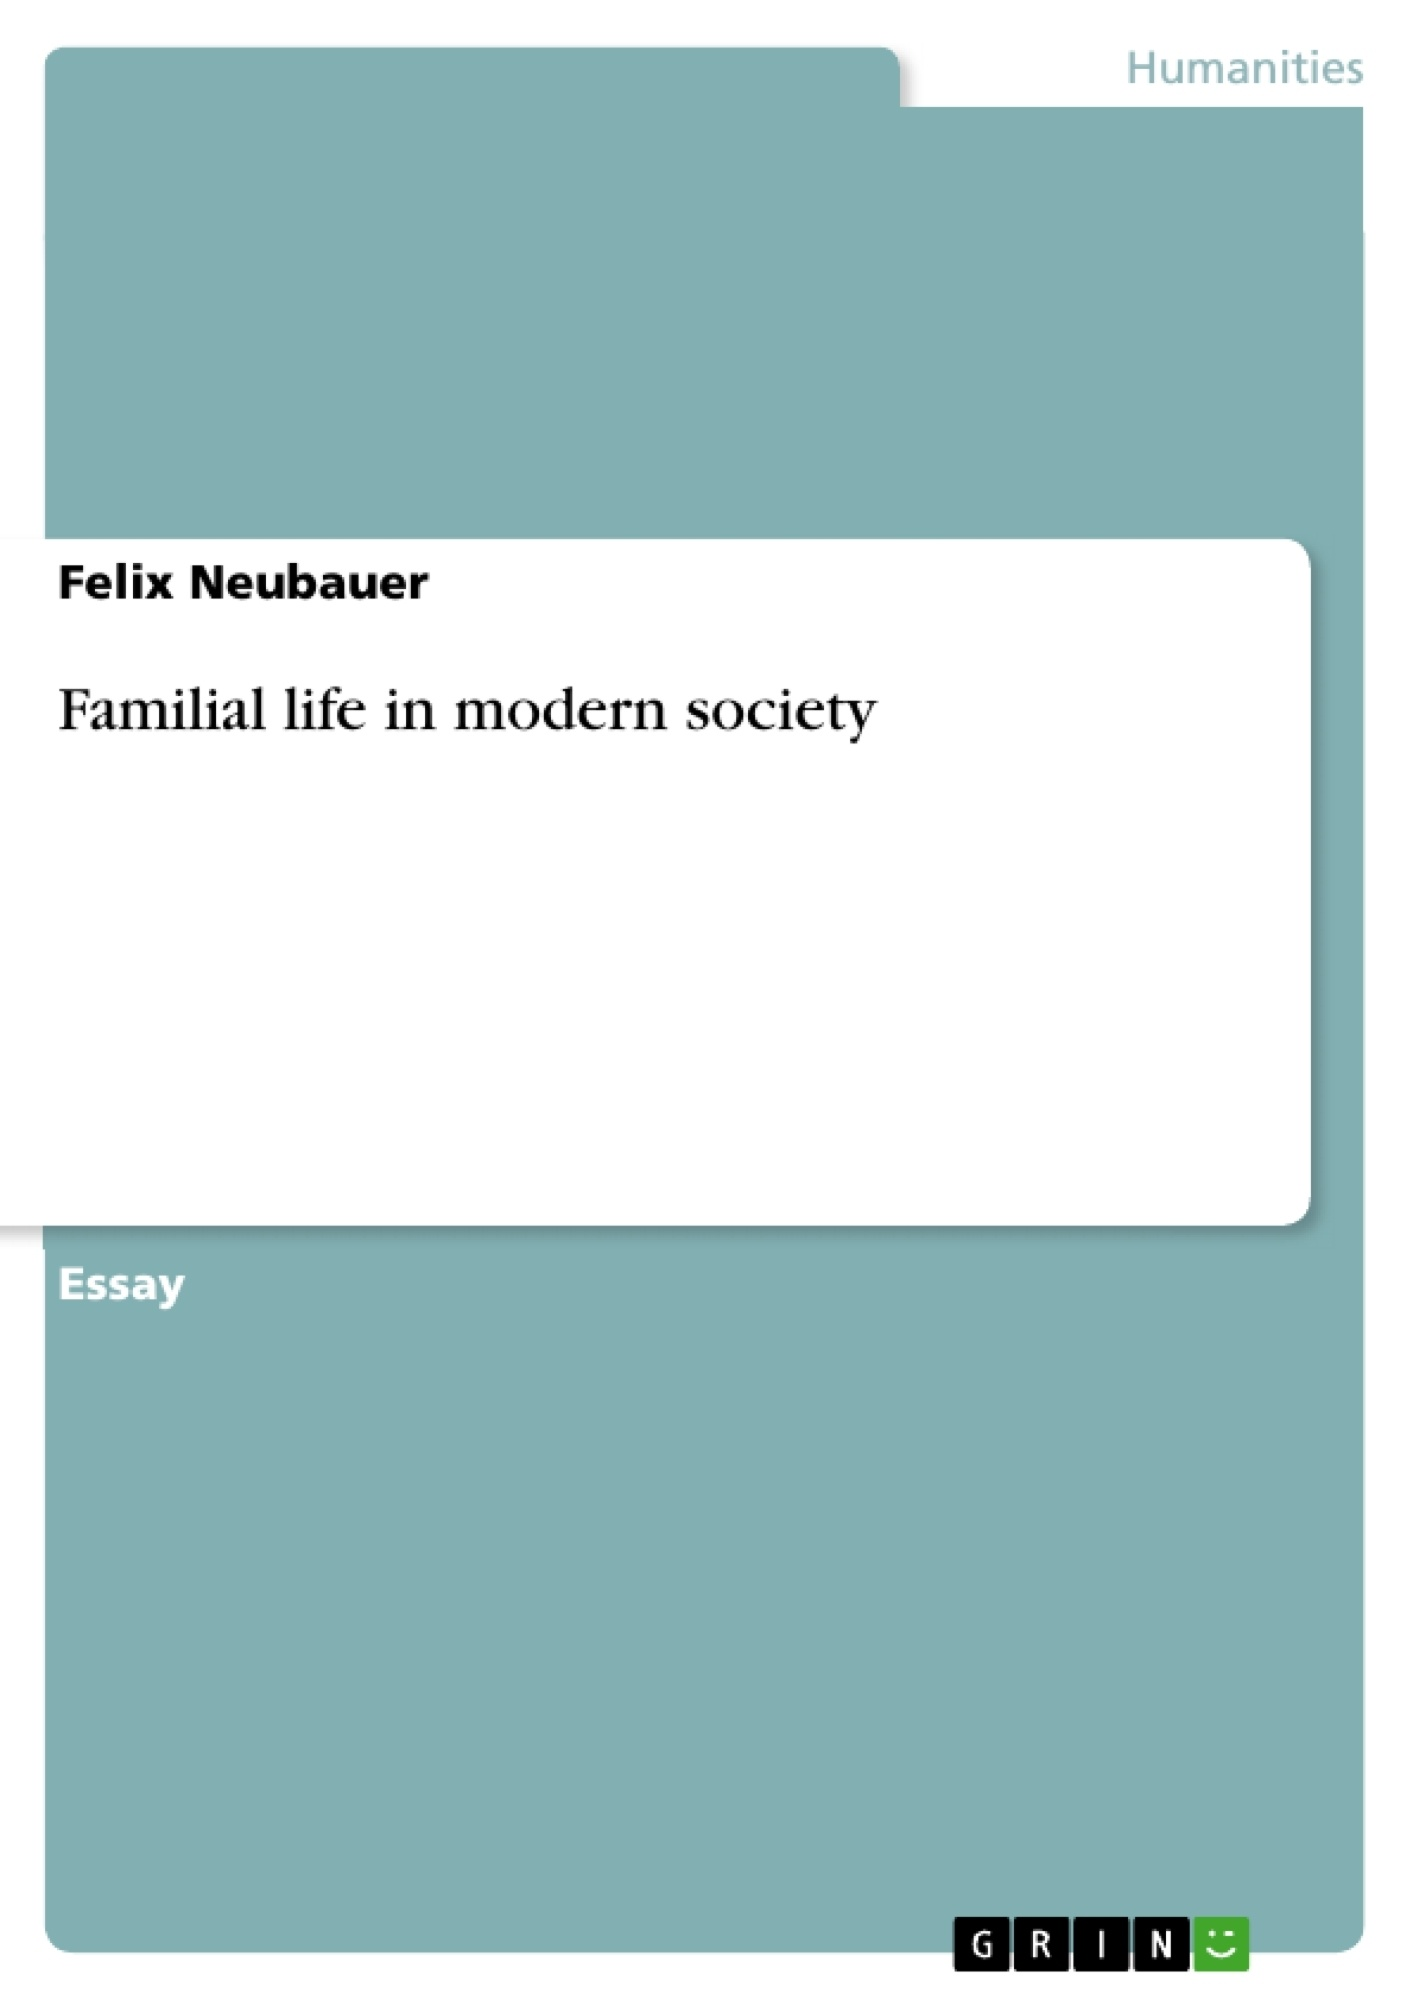 Title: Familial life in modern society